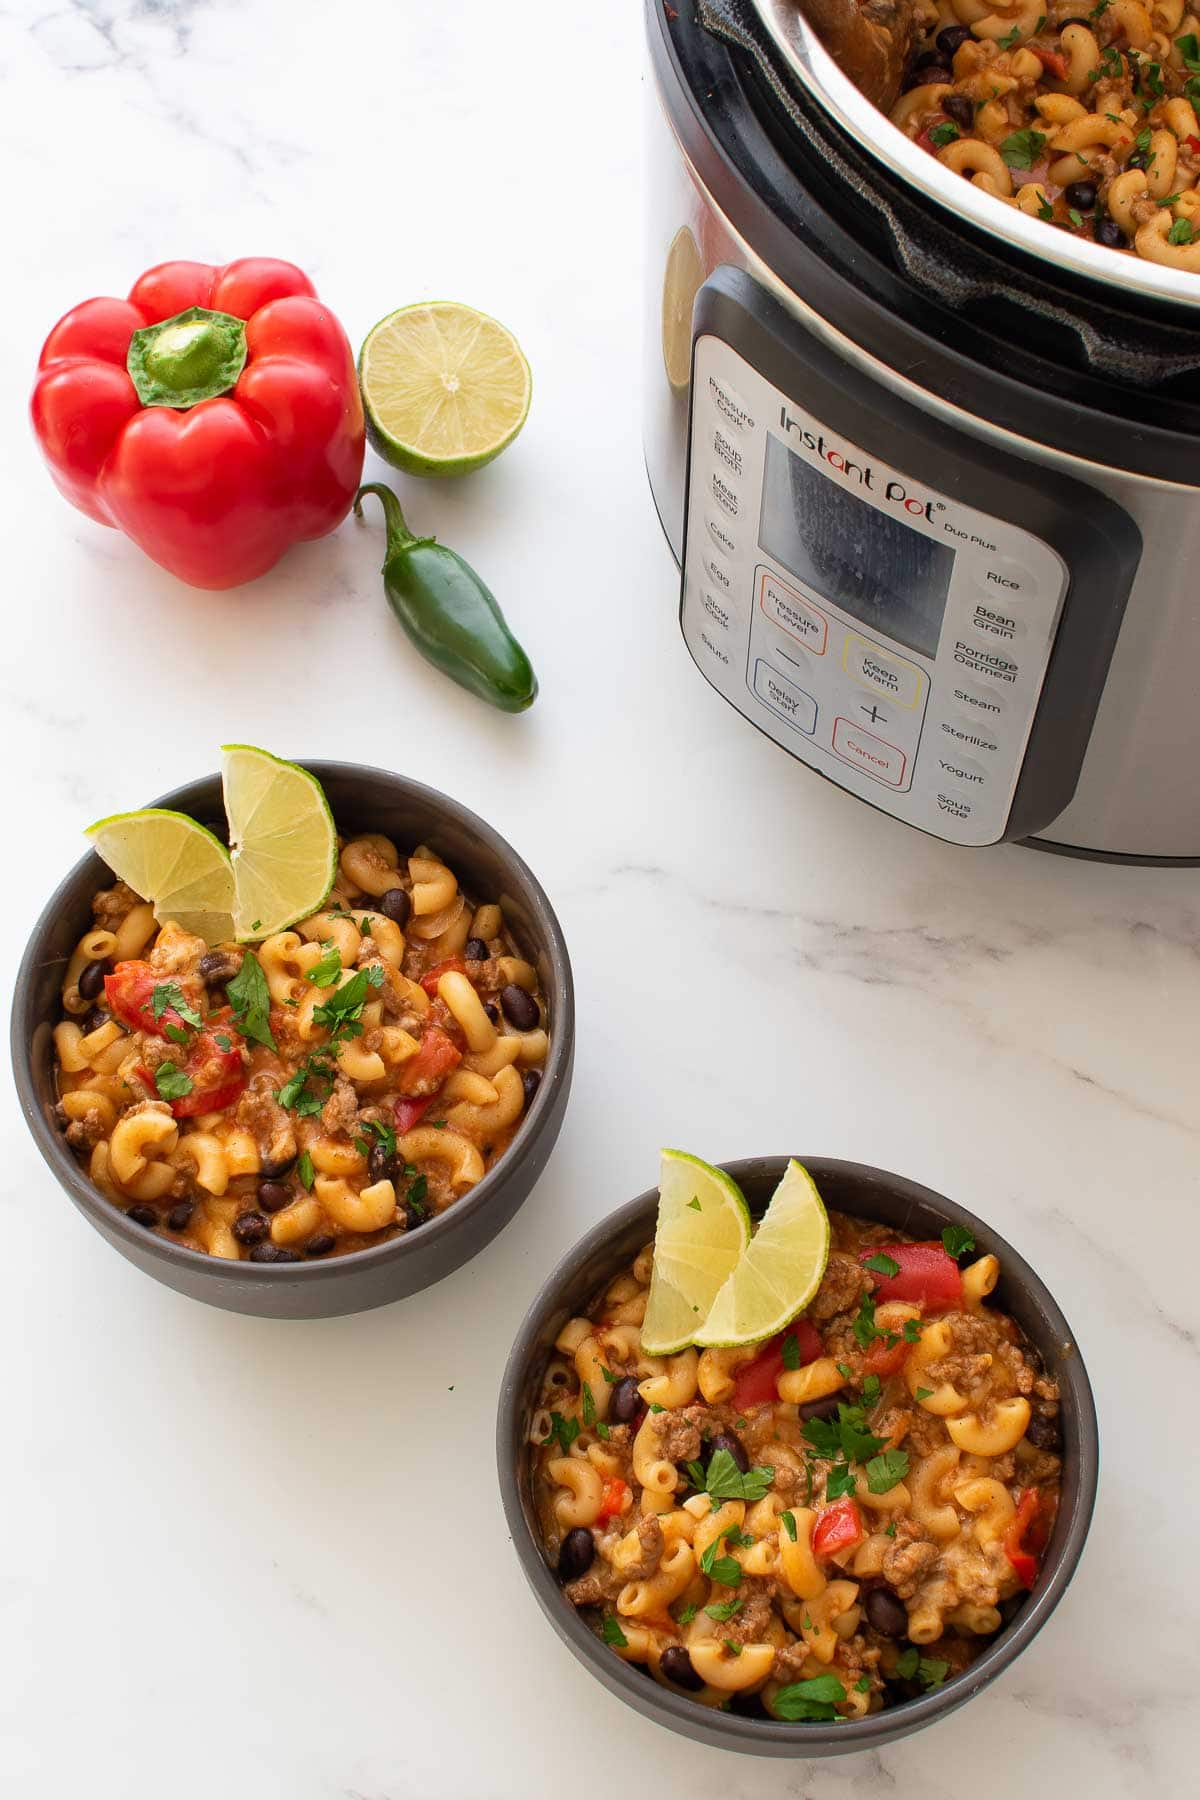 Two bowls of chili mac, with vegetables on the side and a pressure cooker in the background.